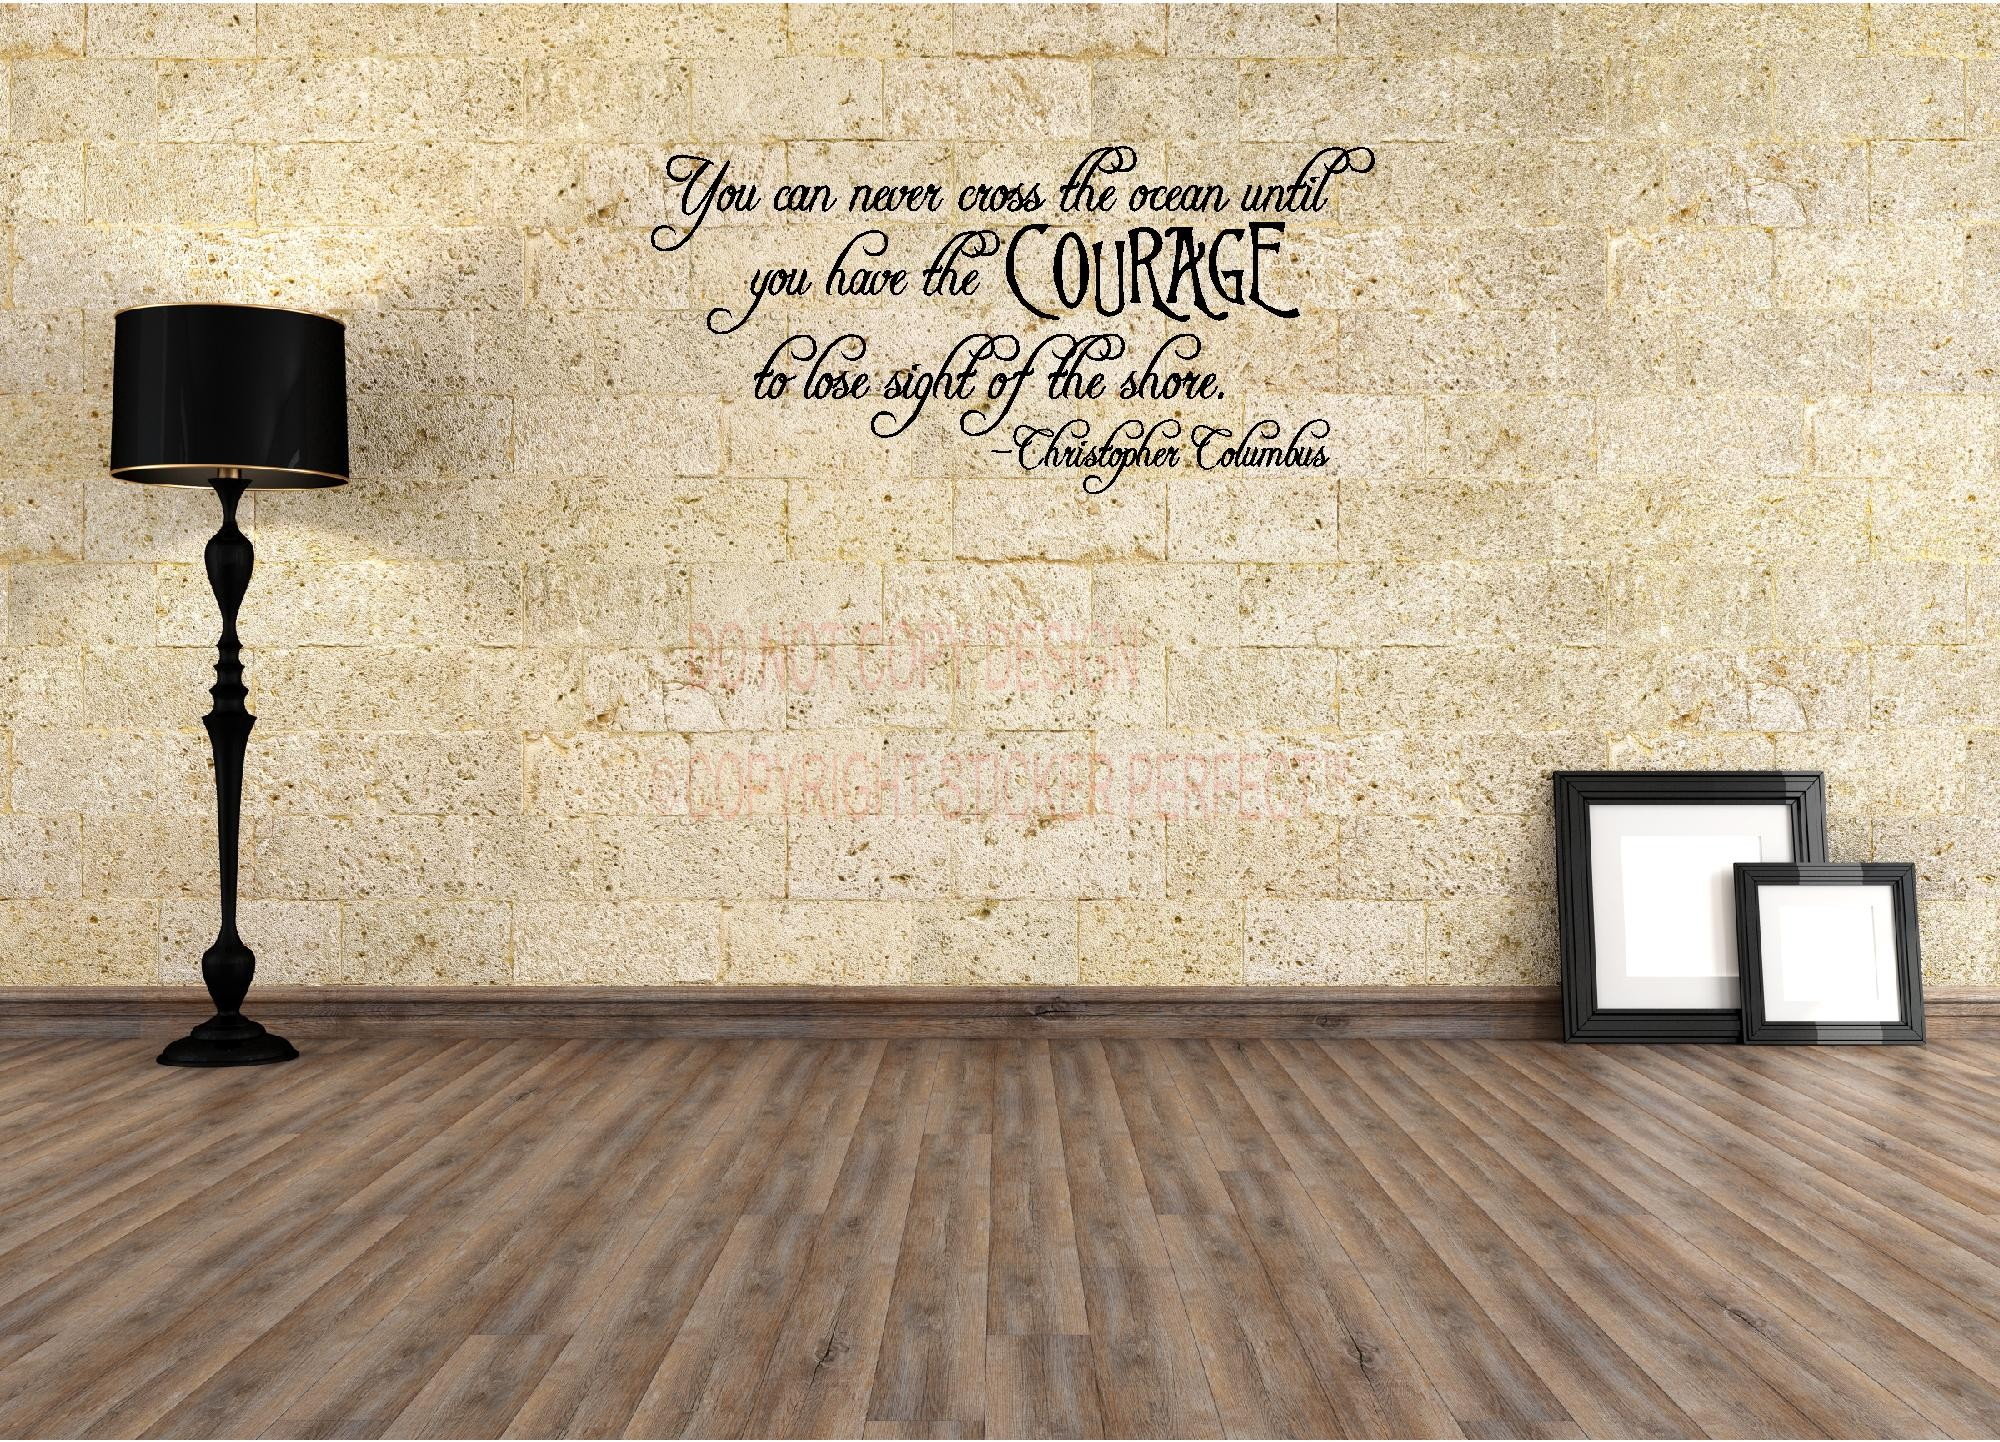 Funny Quotes About Christopher Columbus Quotesgram: Christopher Columbus Quotes About Courage. QuotesGram